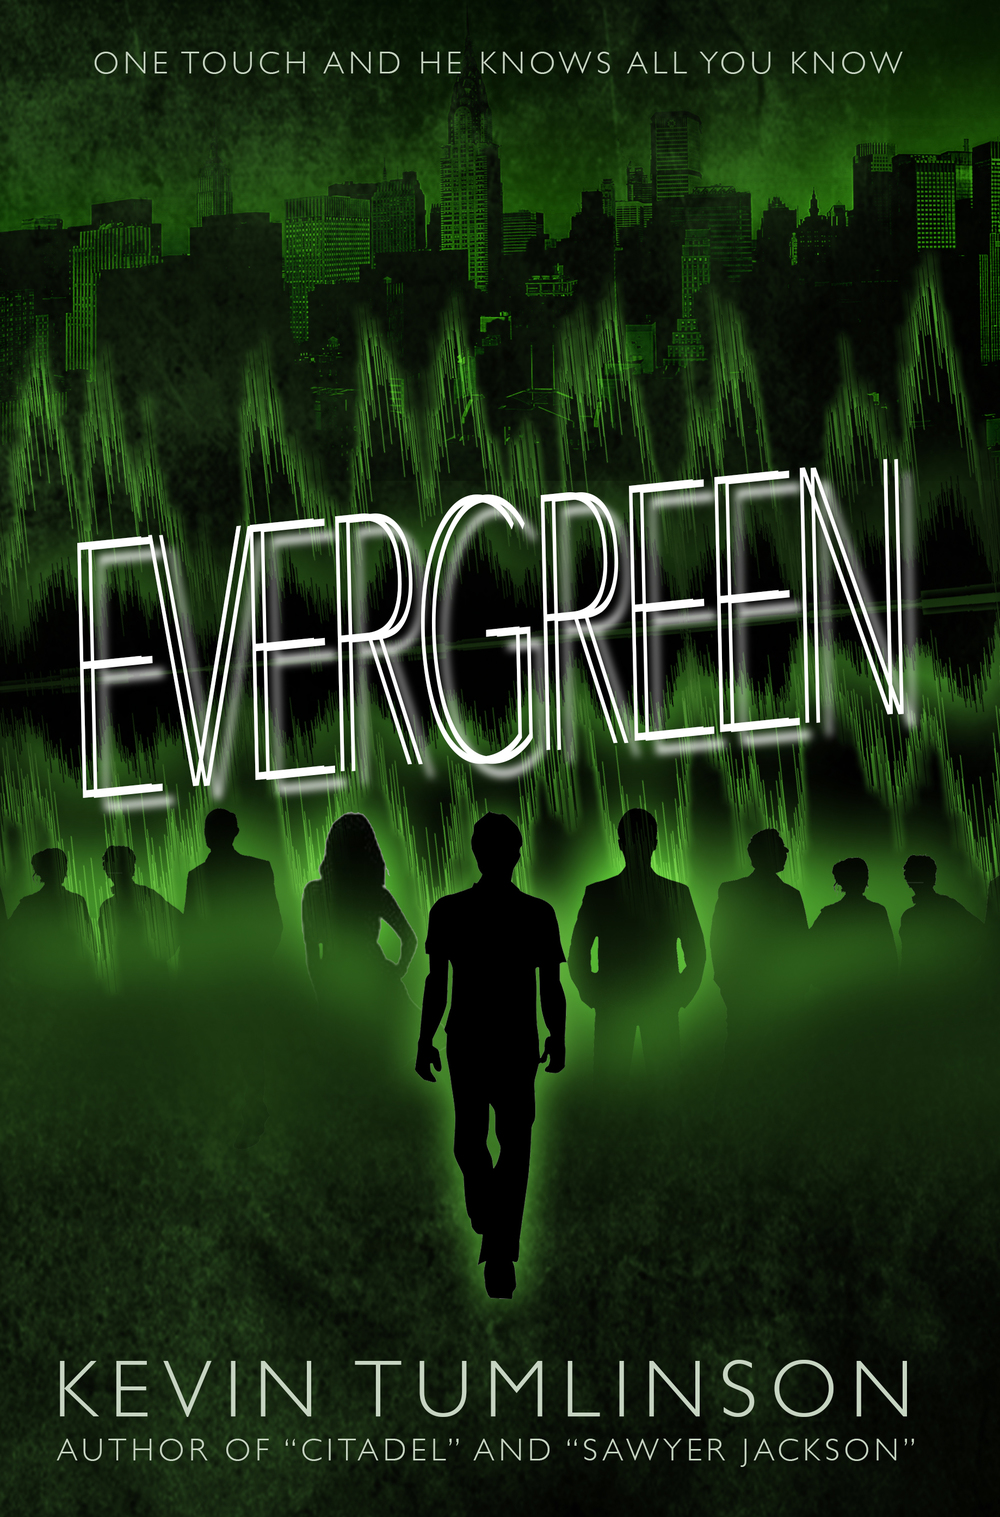 Pick up your copy of Evergreen now, for a special limited time introductory price of just $2.99, only on Amazon Kindle!